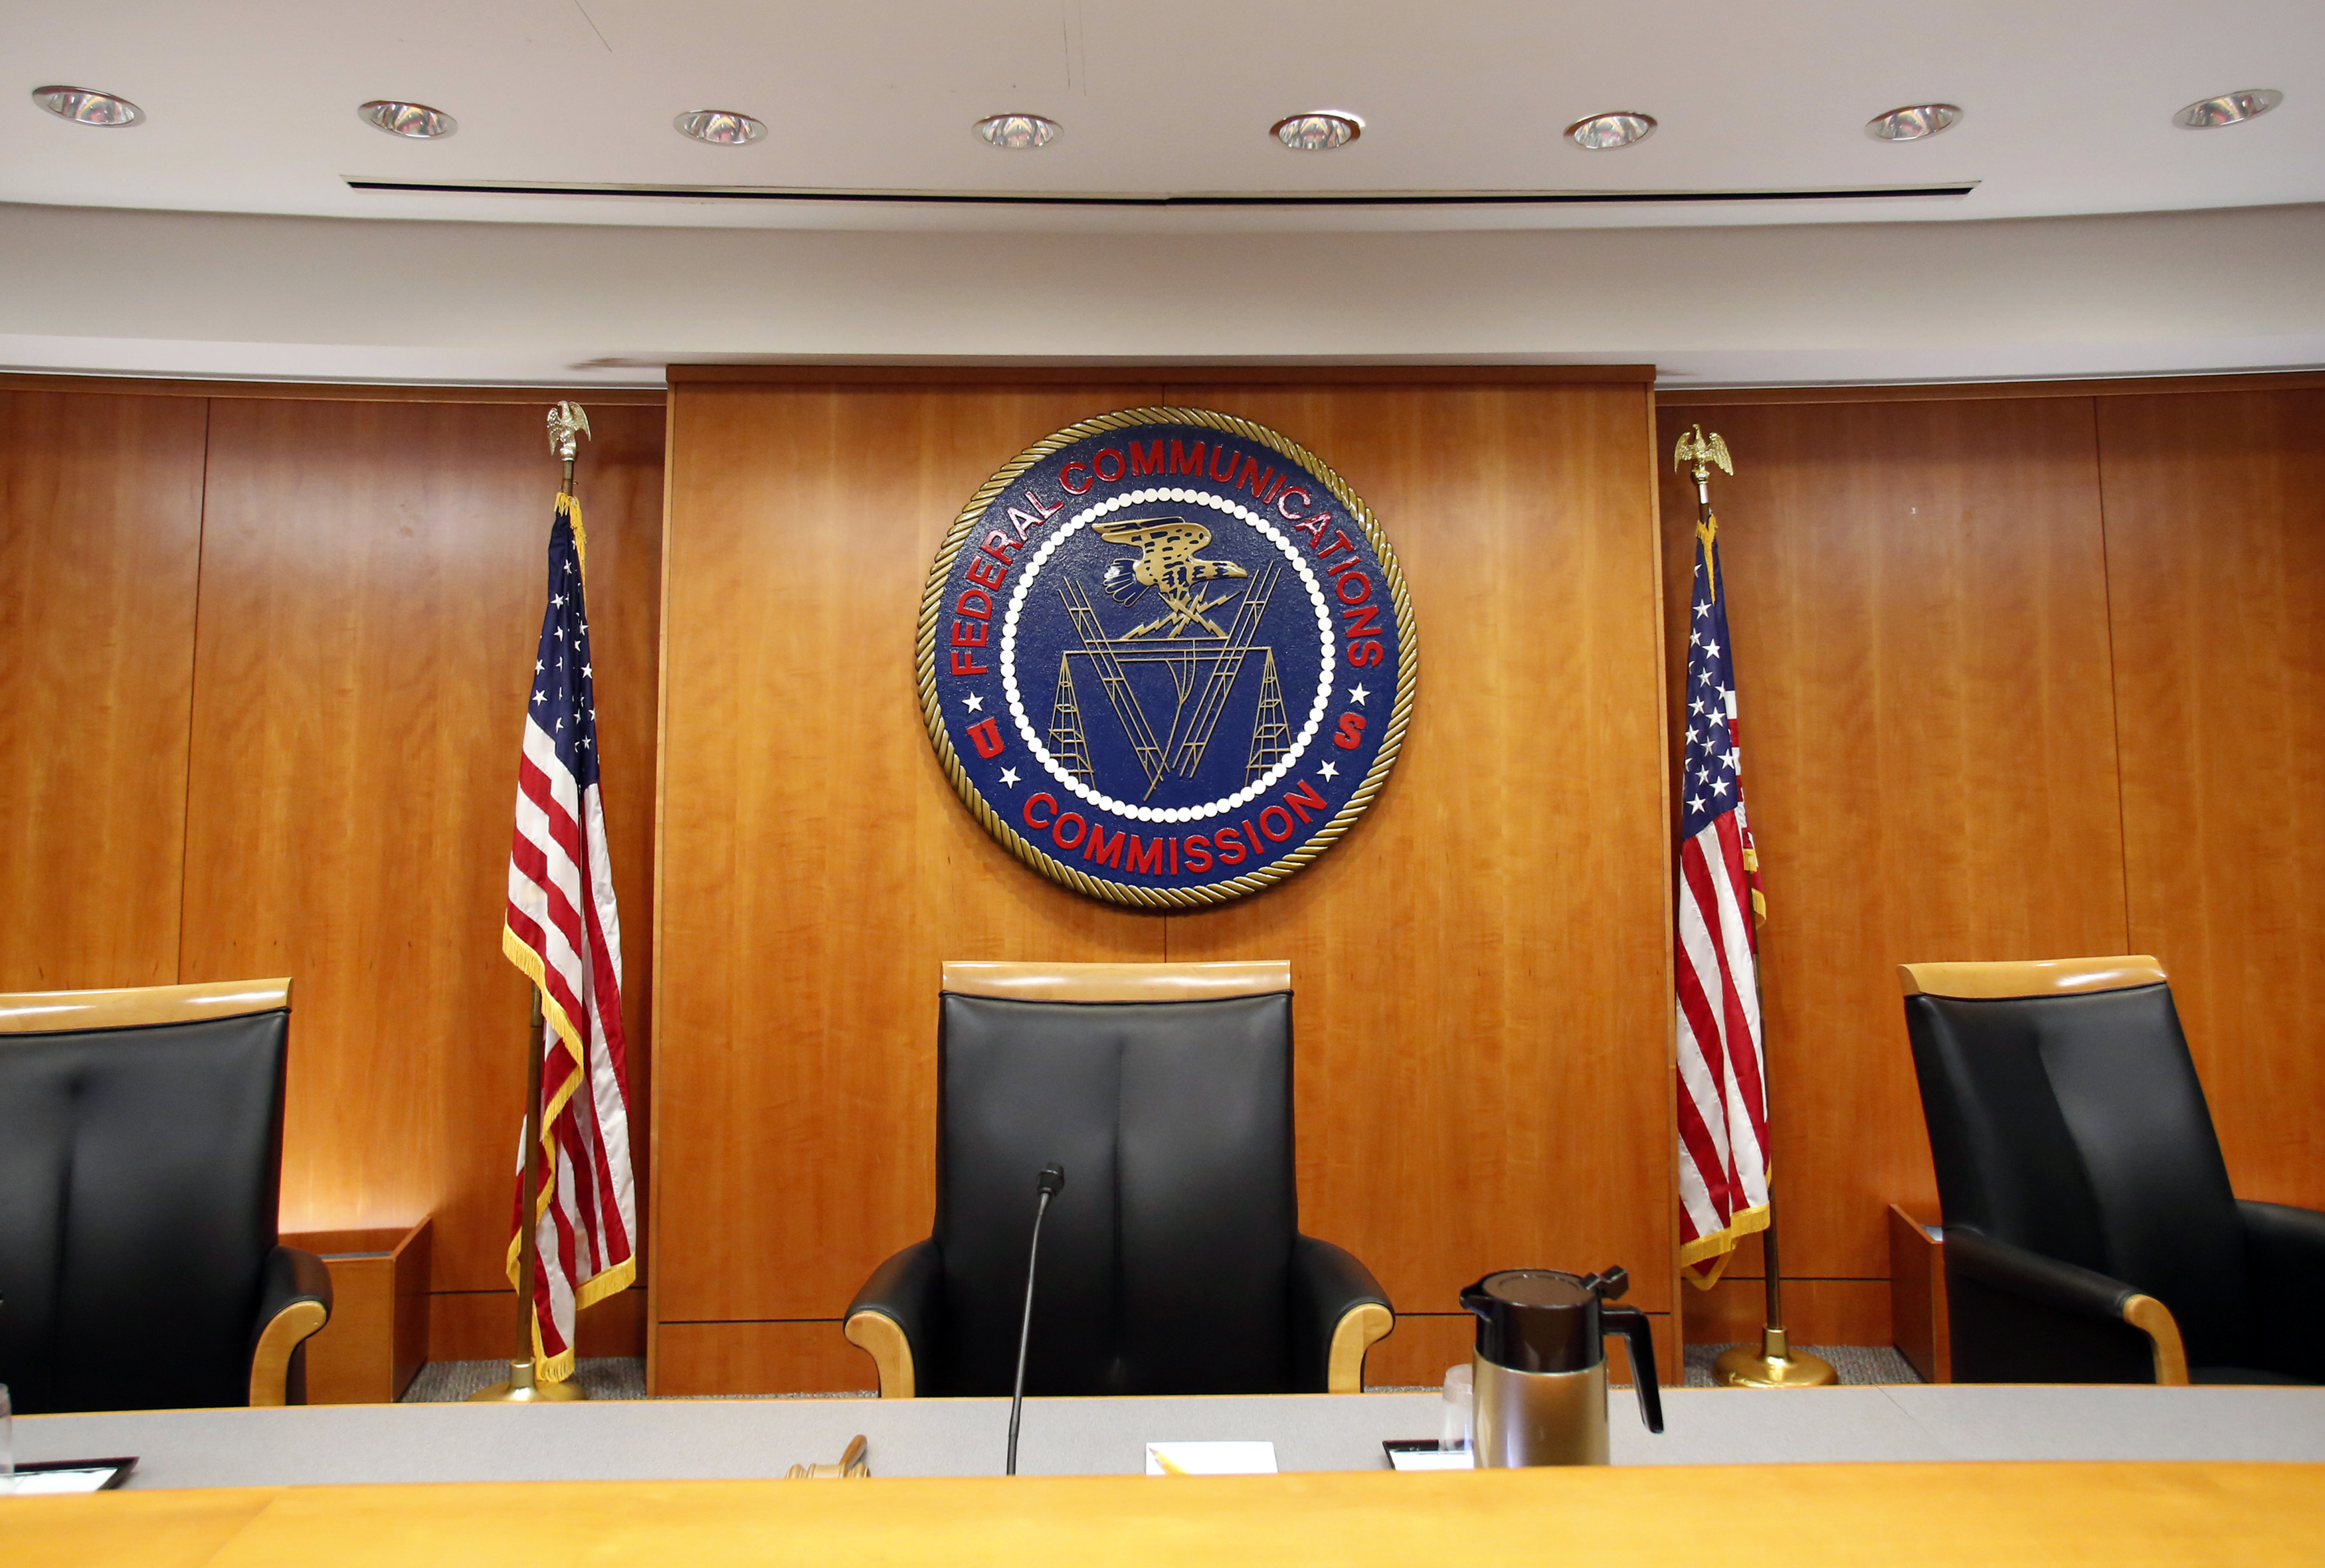 Federal Communications Commission (FCC) hearing room